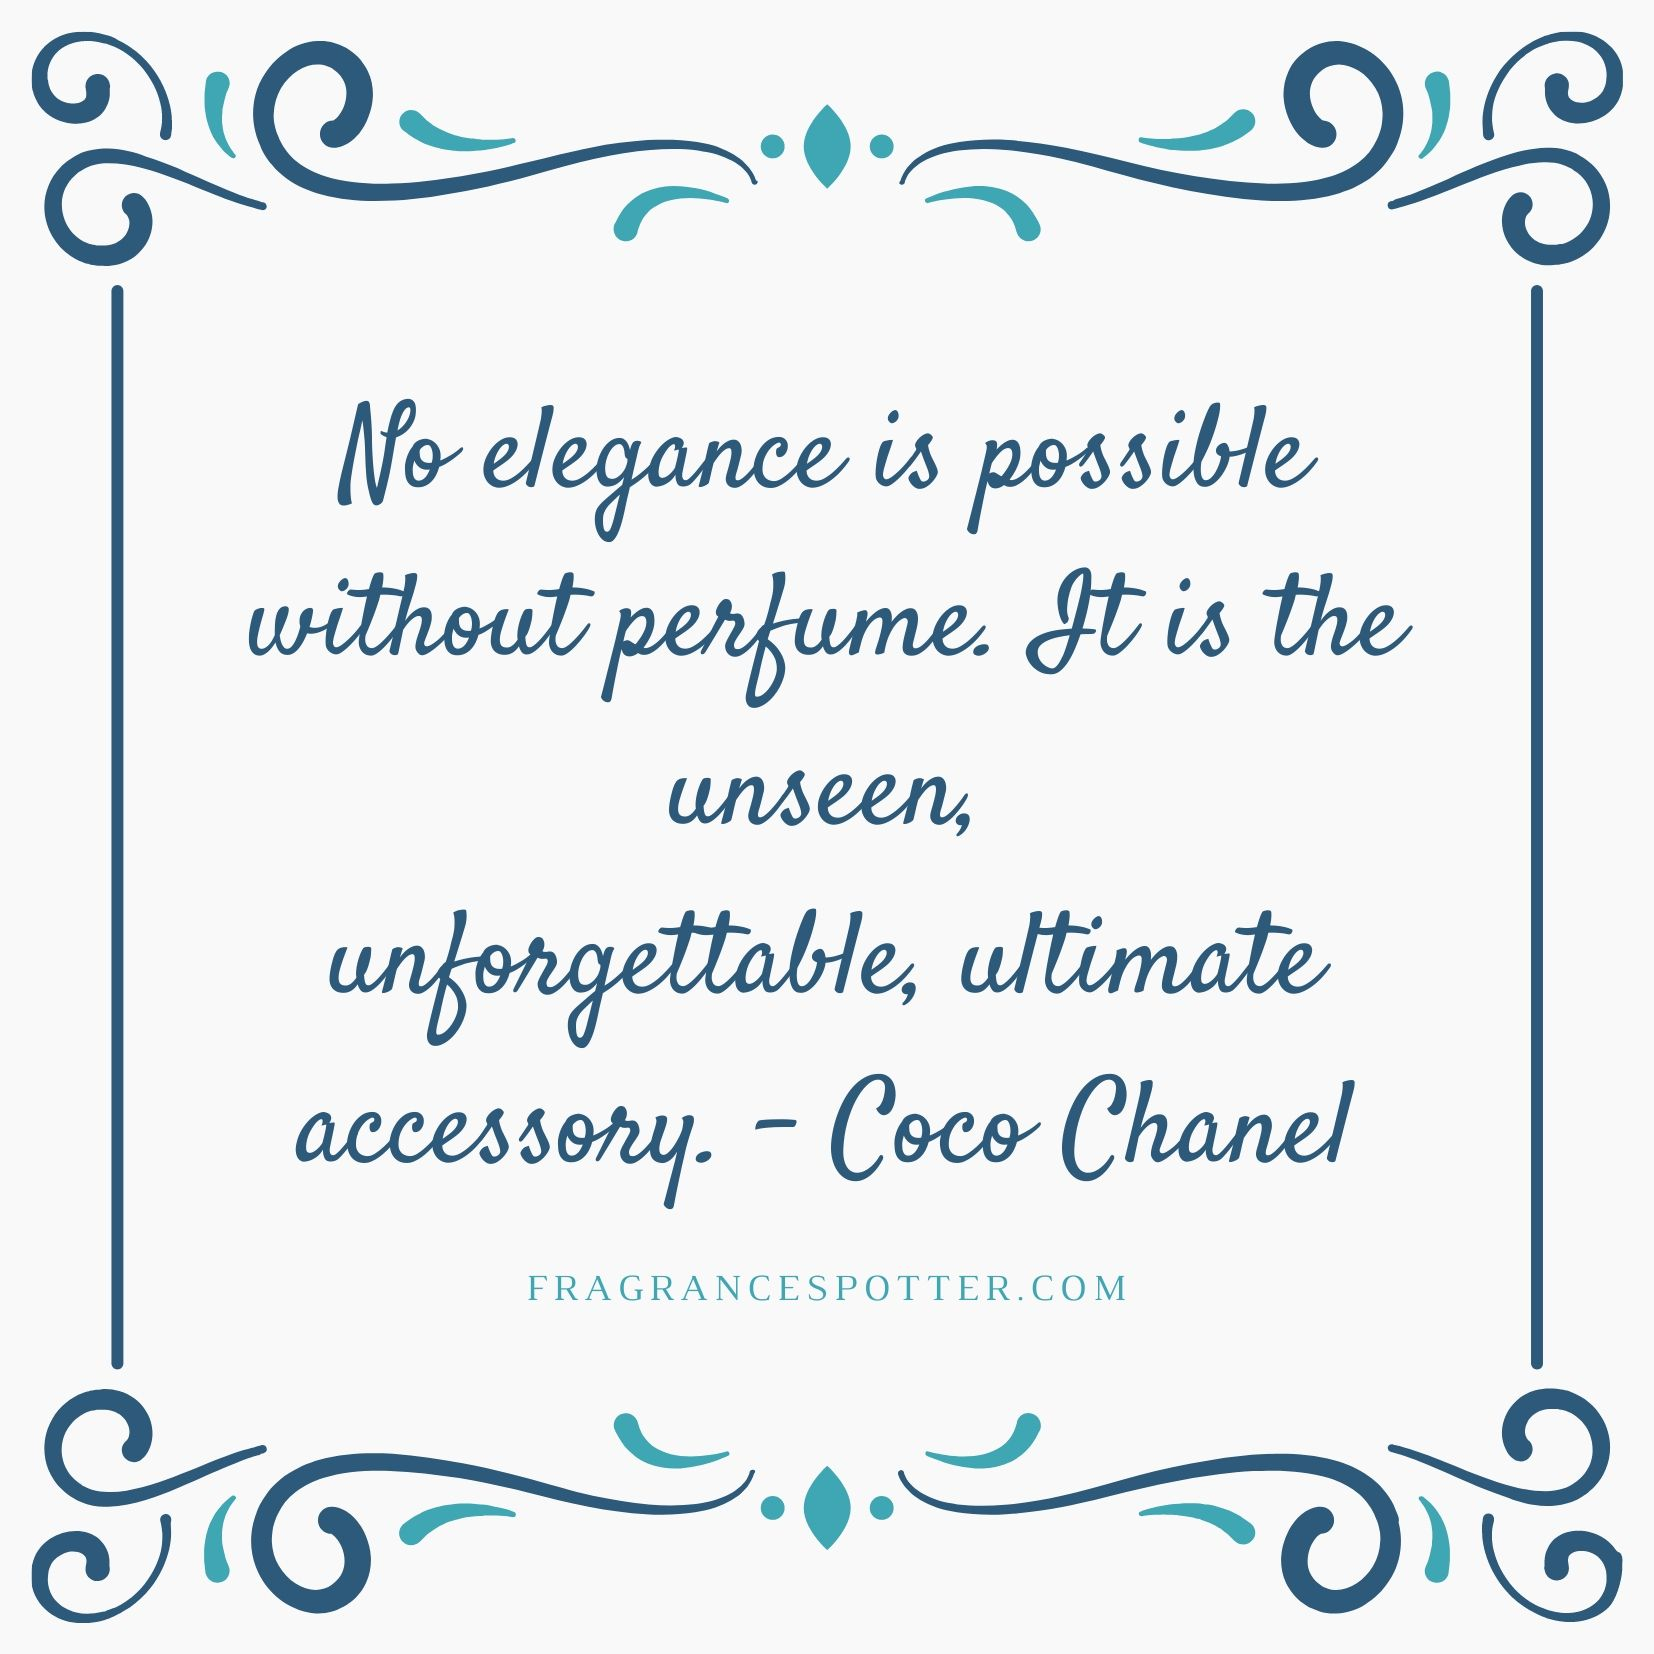 30 Scent Quotes Perfume Aphorisms To Know As A Fragrance Collector